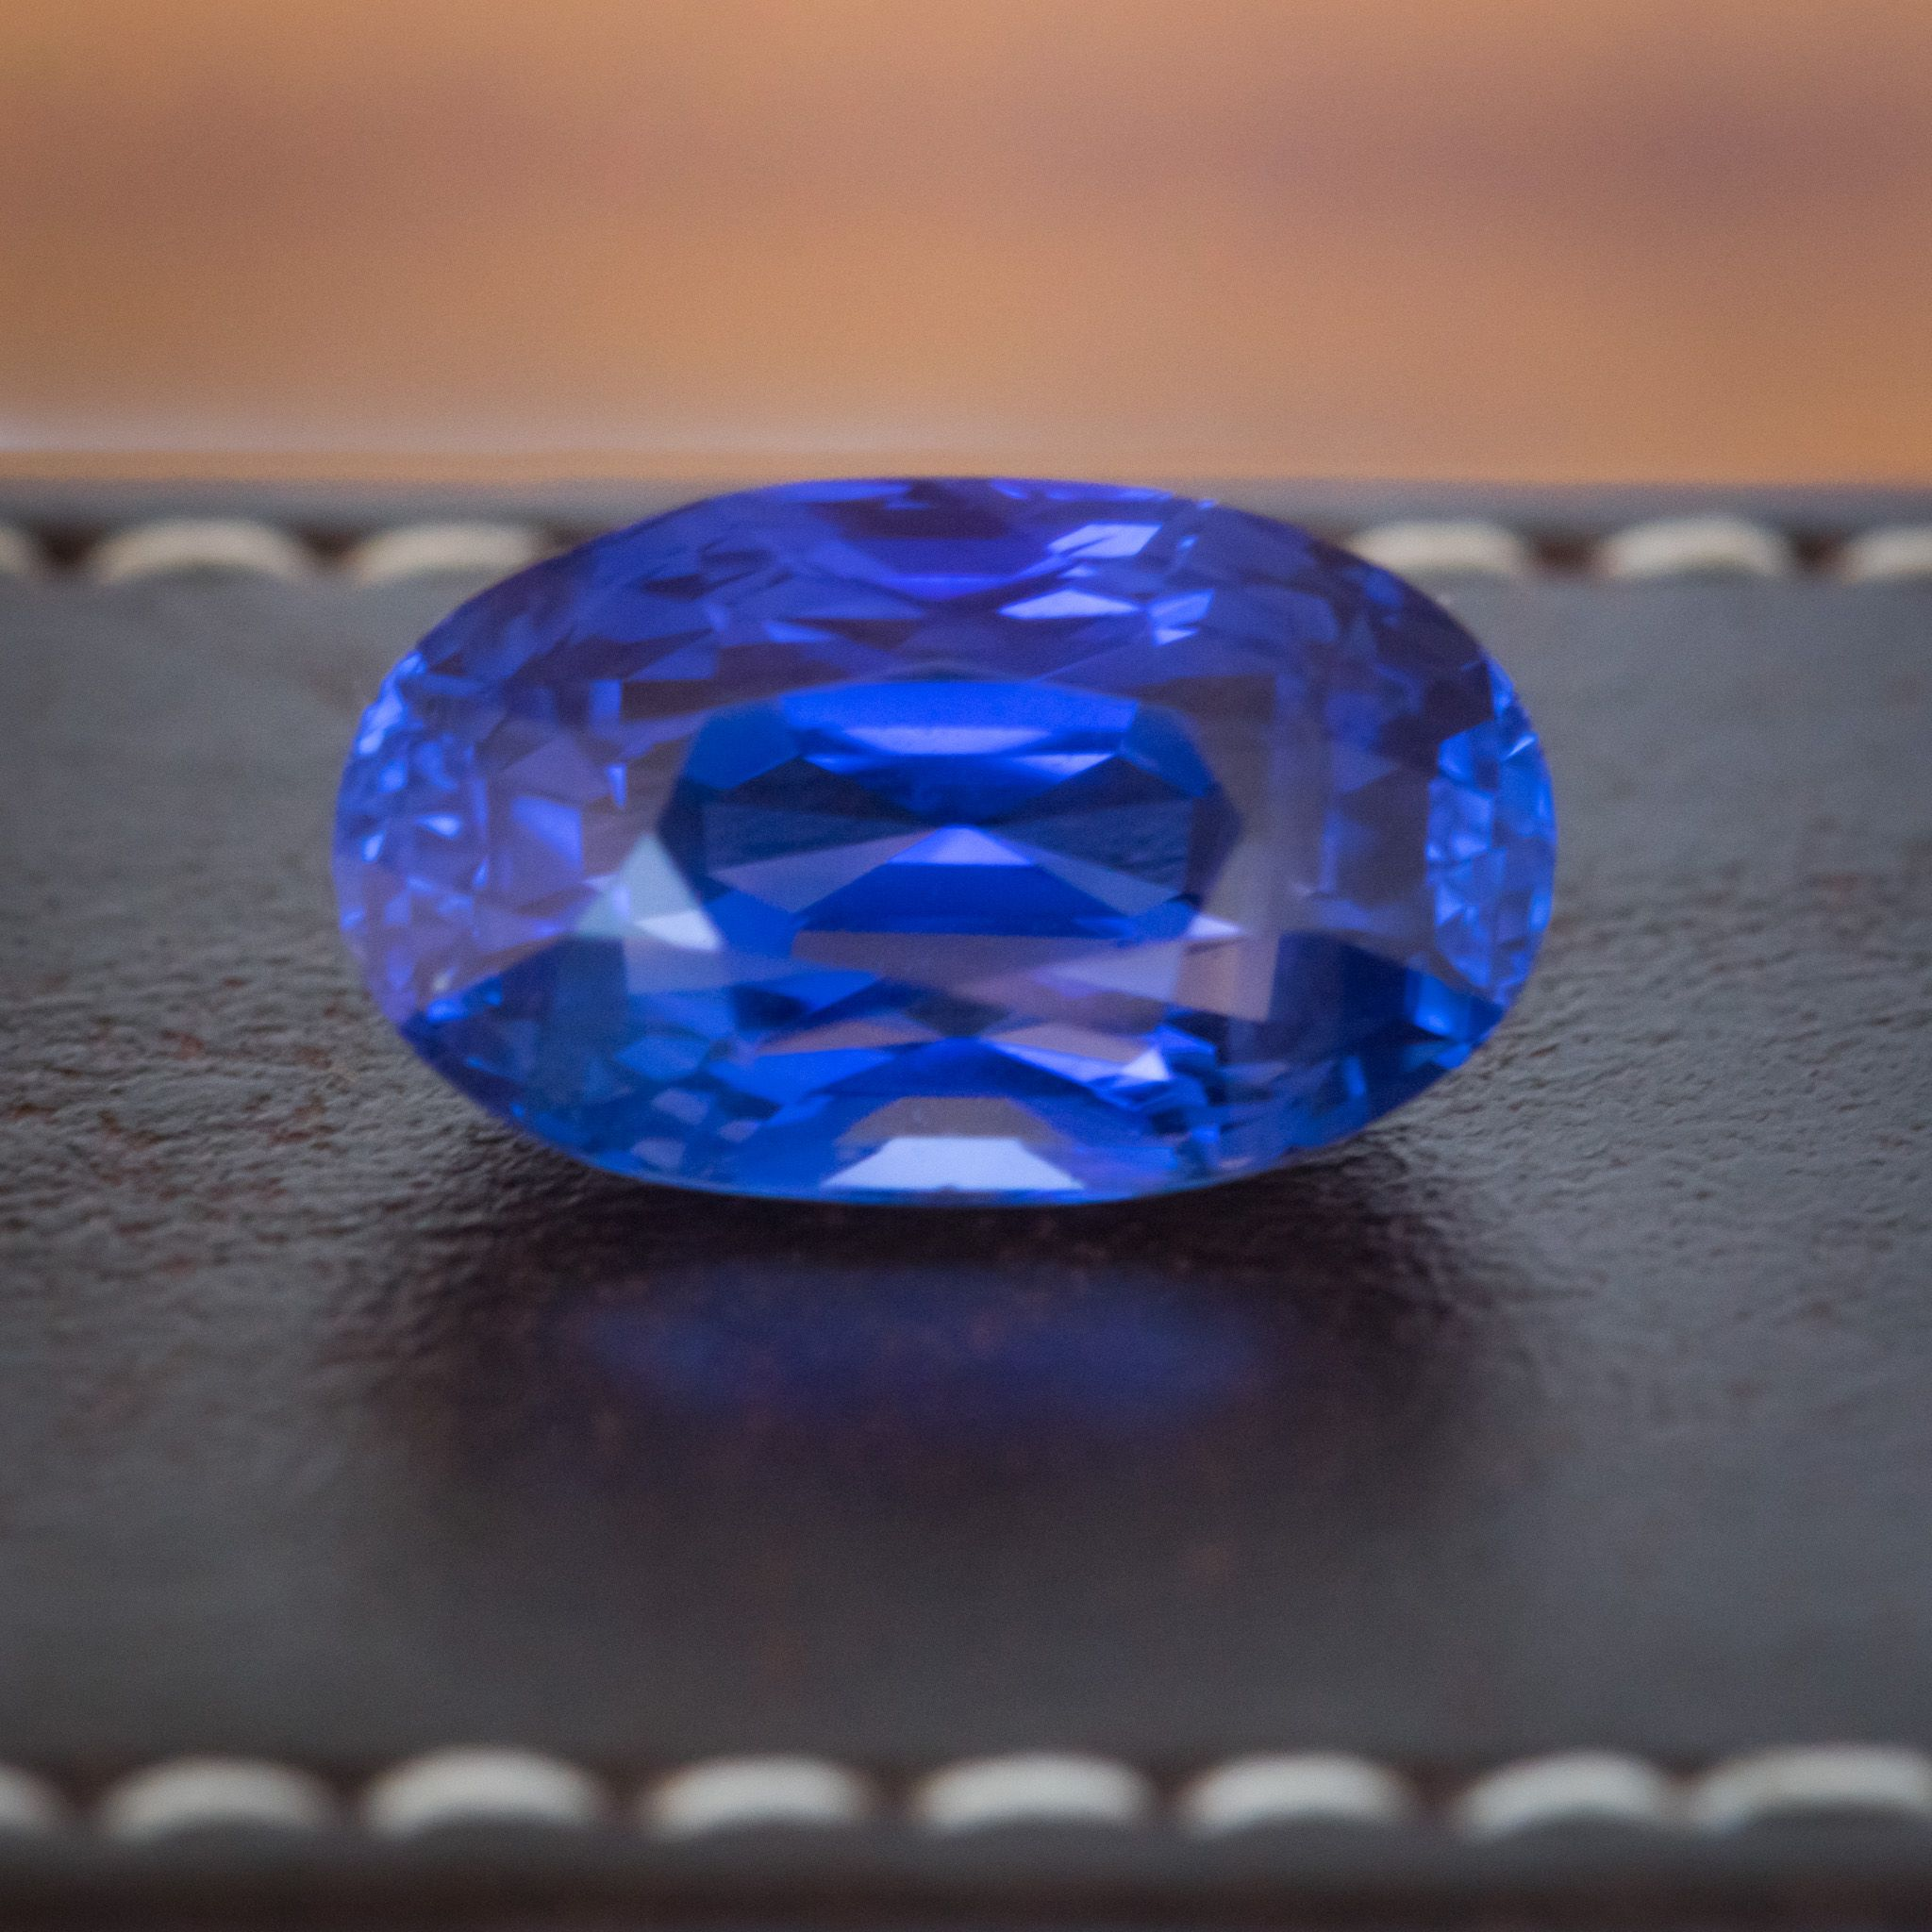 natural size listing il sapphire pear gemstonefindings museum sold cut ct fullxfull by blue dhgv